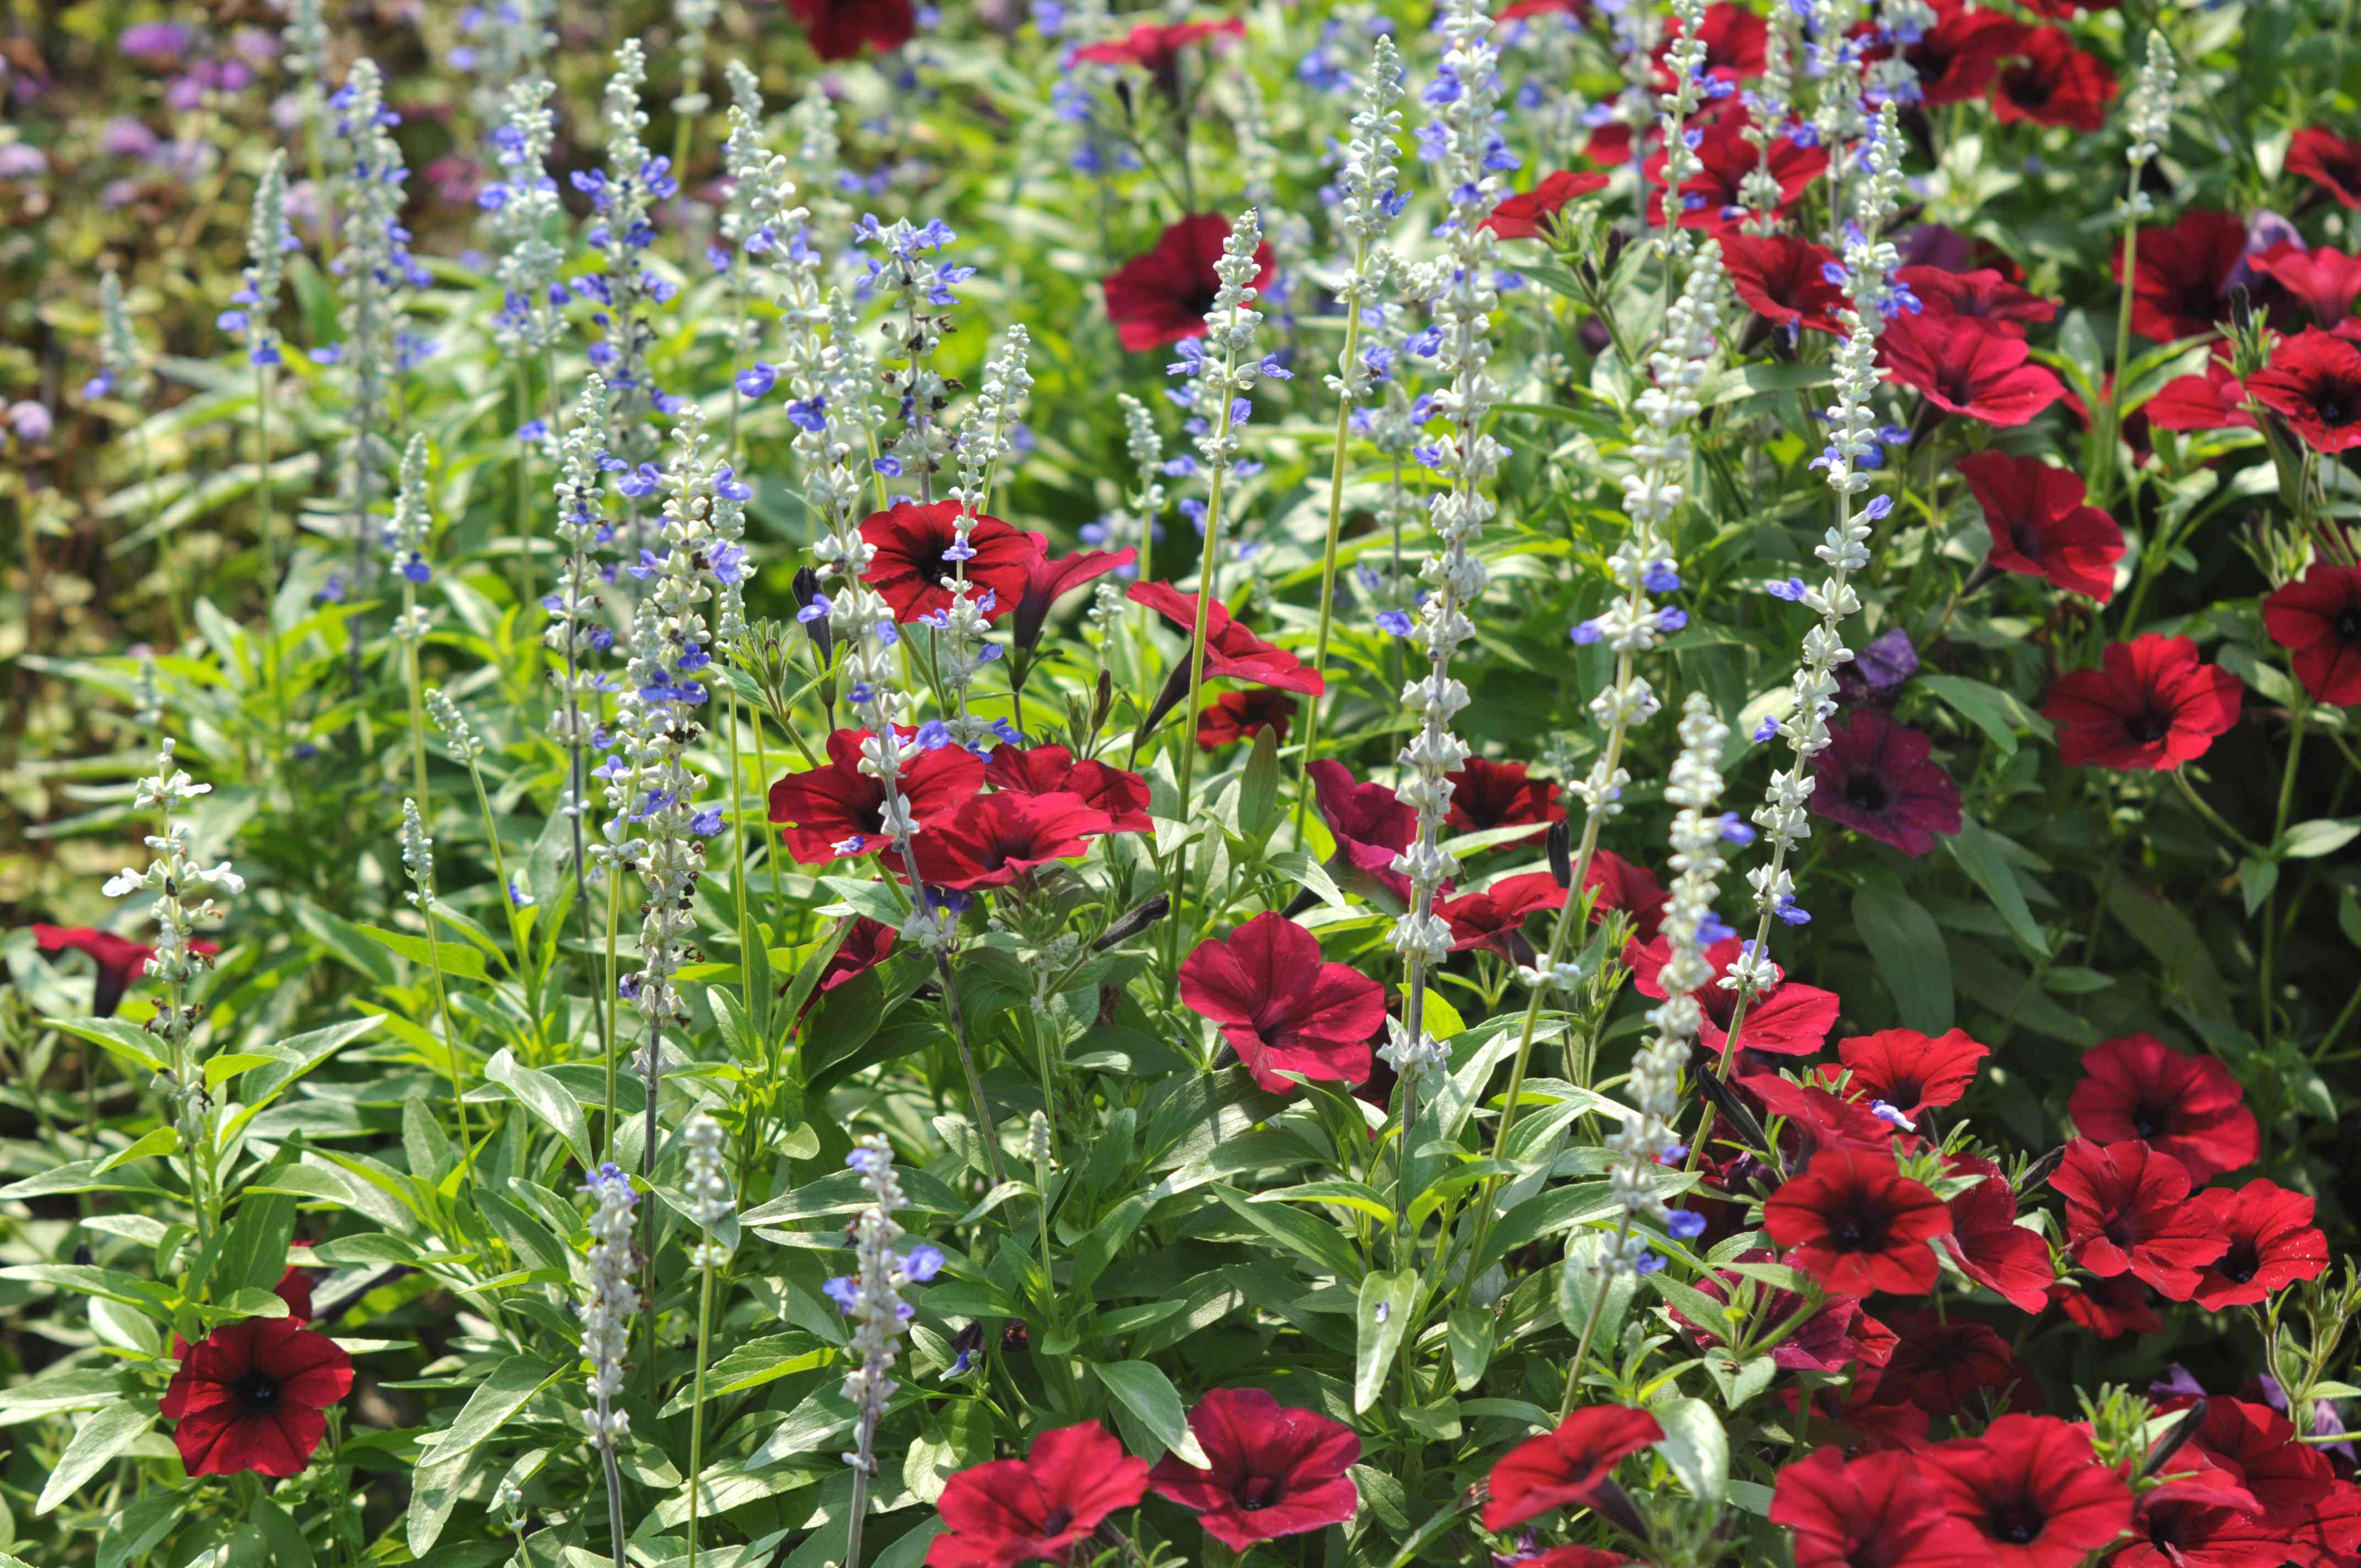 Mealy cup sage with light blue flowers in leaves and other red flowers